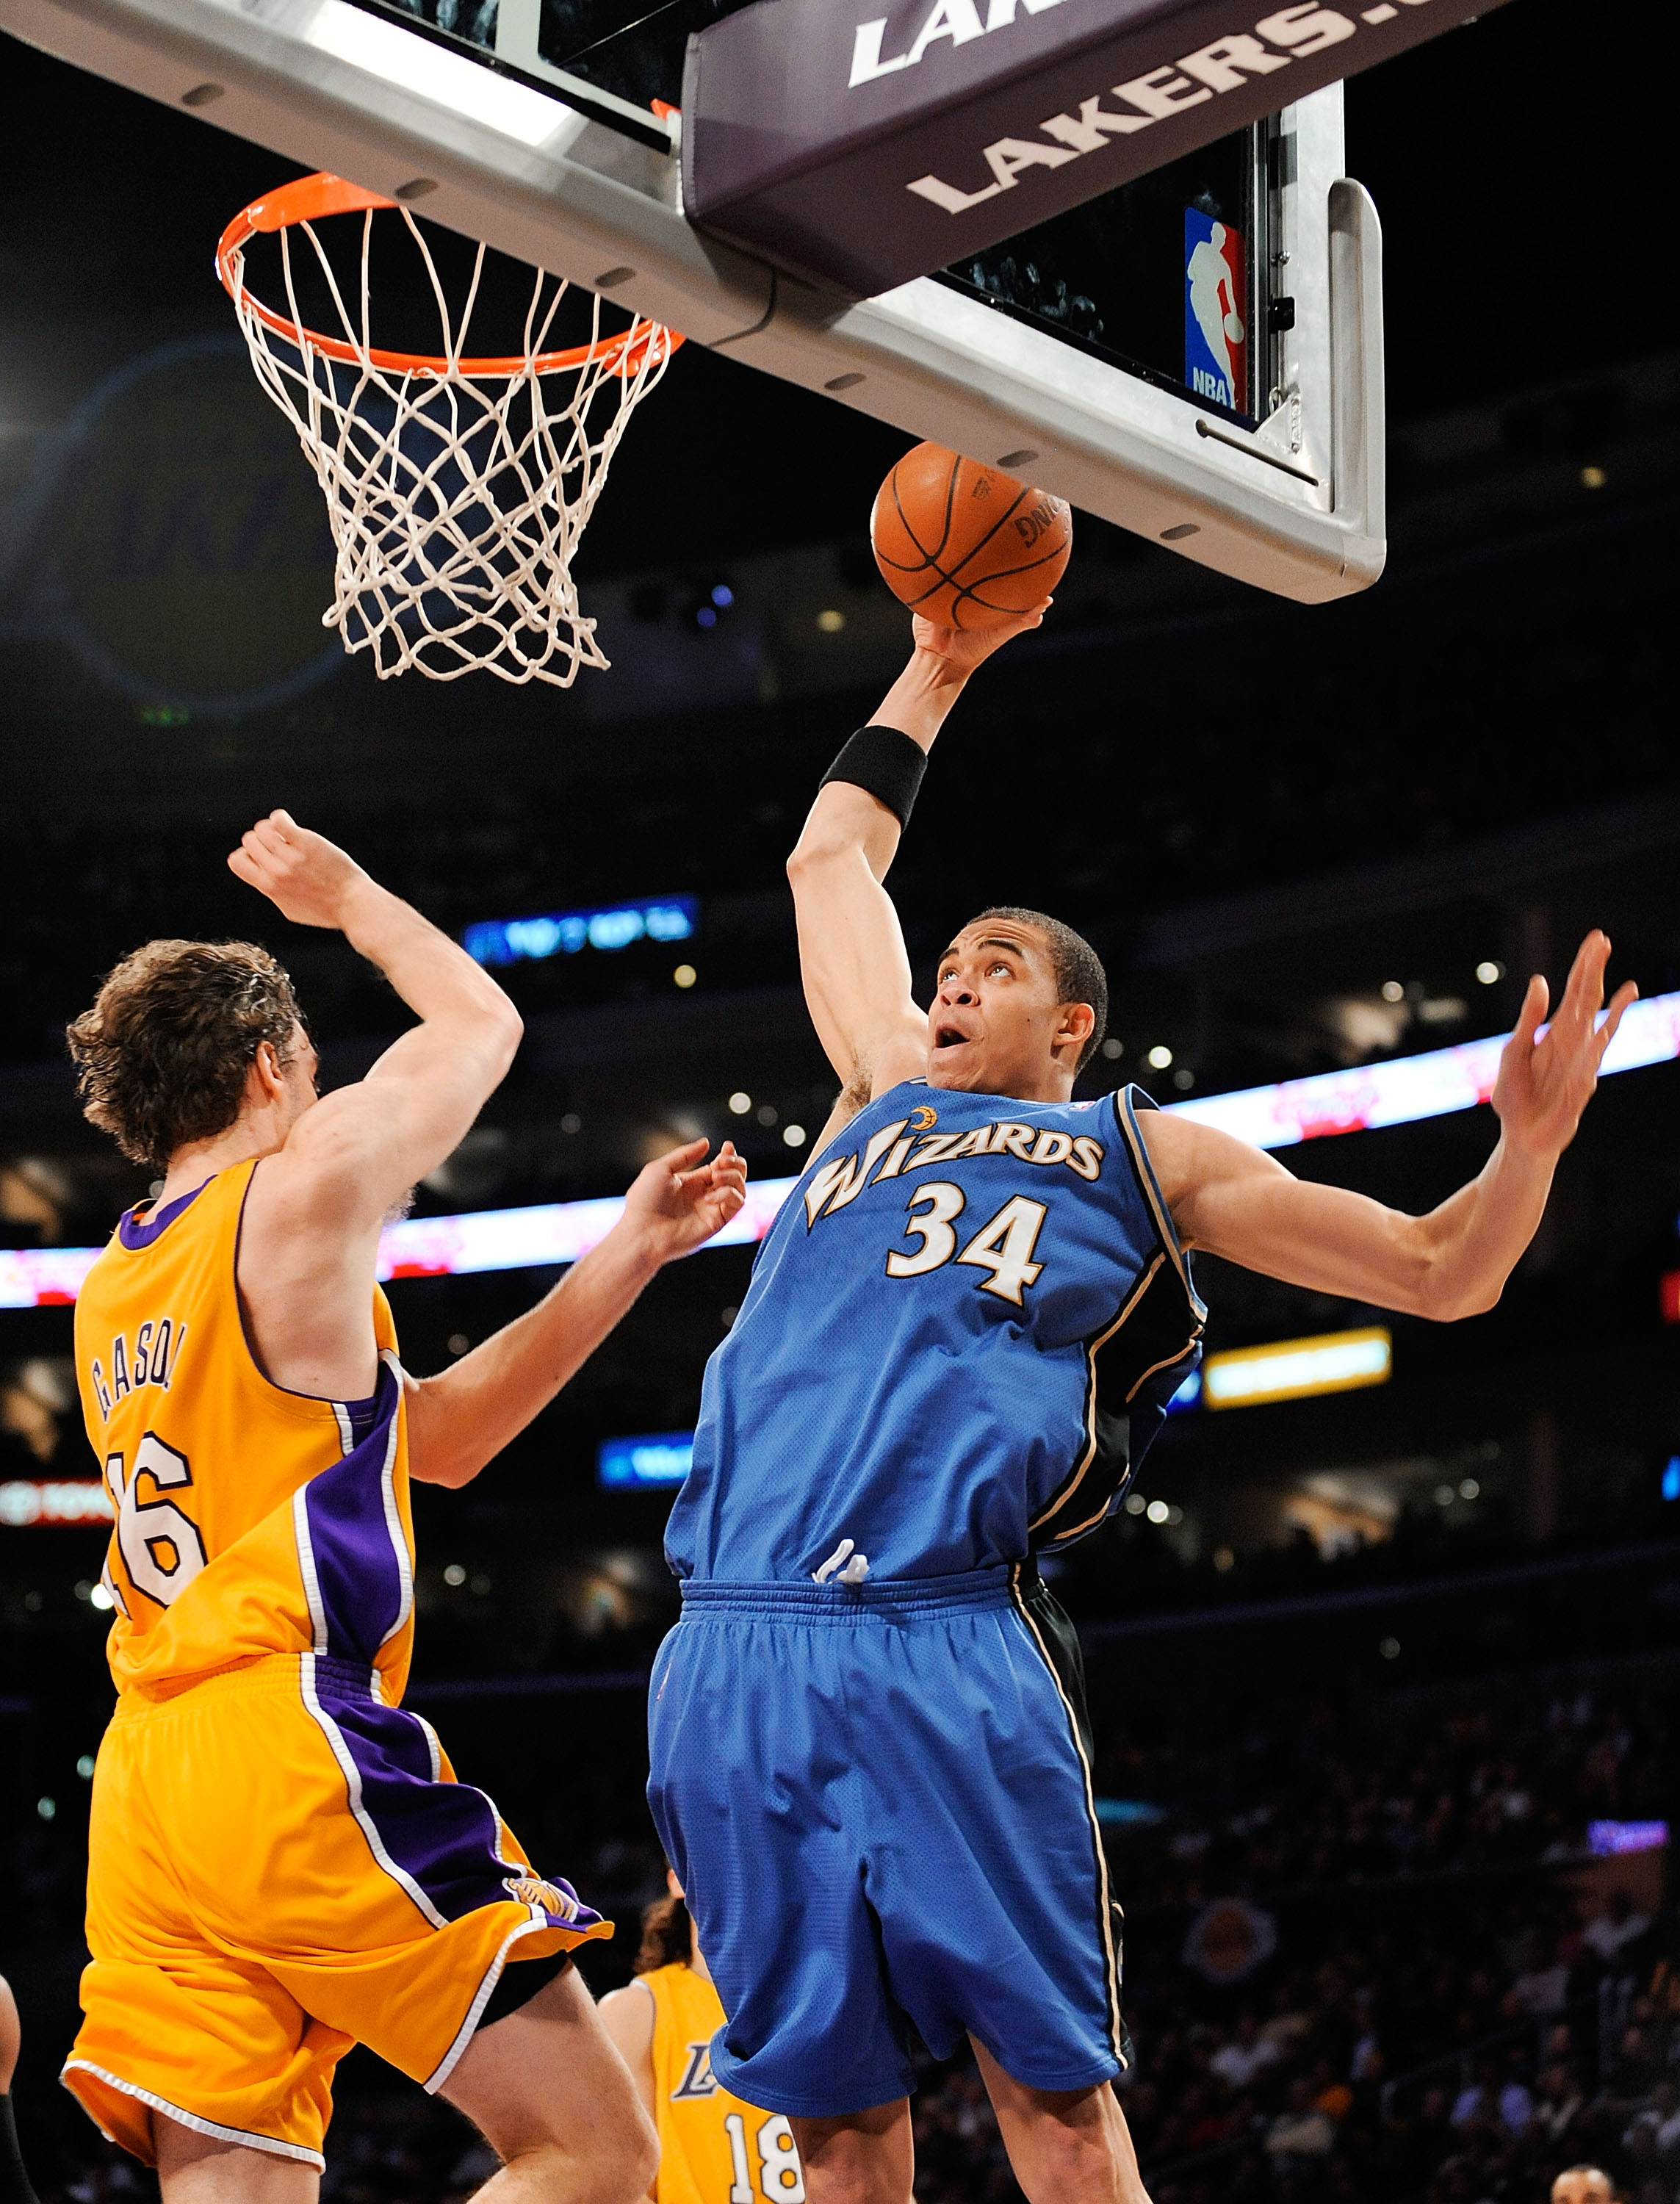 LOS ANGELES, CA - JANUARY 22: JaVale McGee #34 of the Washington Wizards slams the ball against Pau Gasol of the Los Angeles Lakers during the second quarter at the Staples Center January 22, 2009 in Los Angeles, California. NOTE TO USER: User expressly a